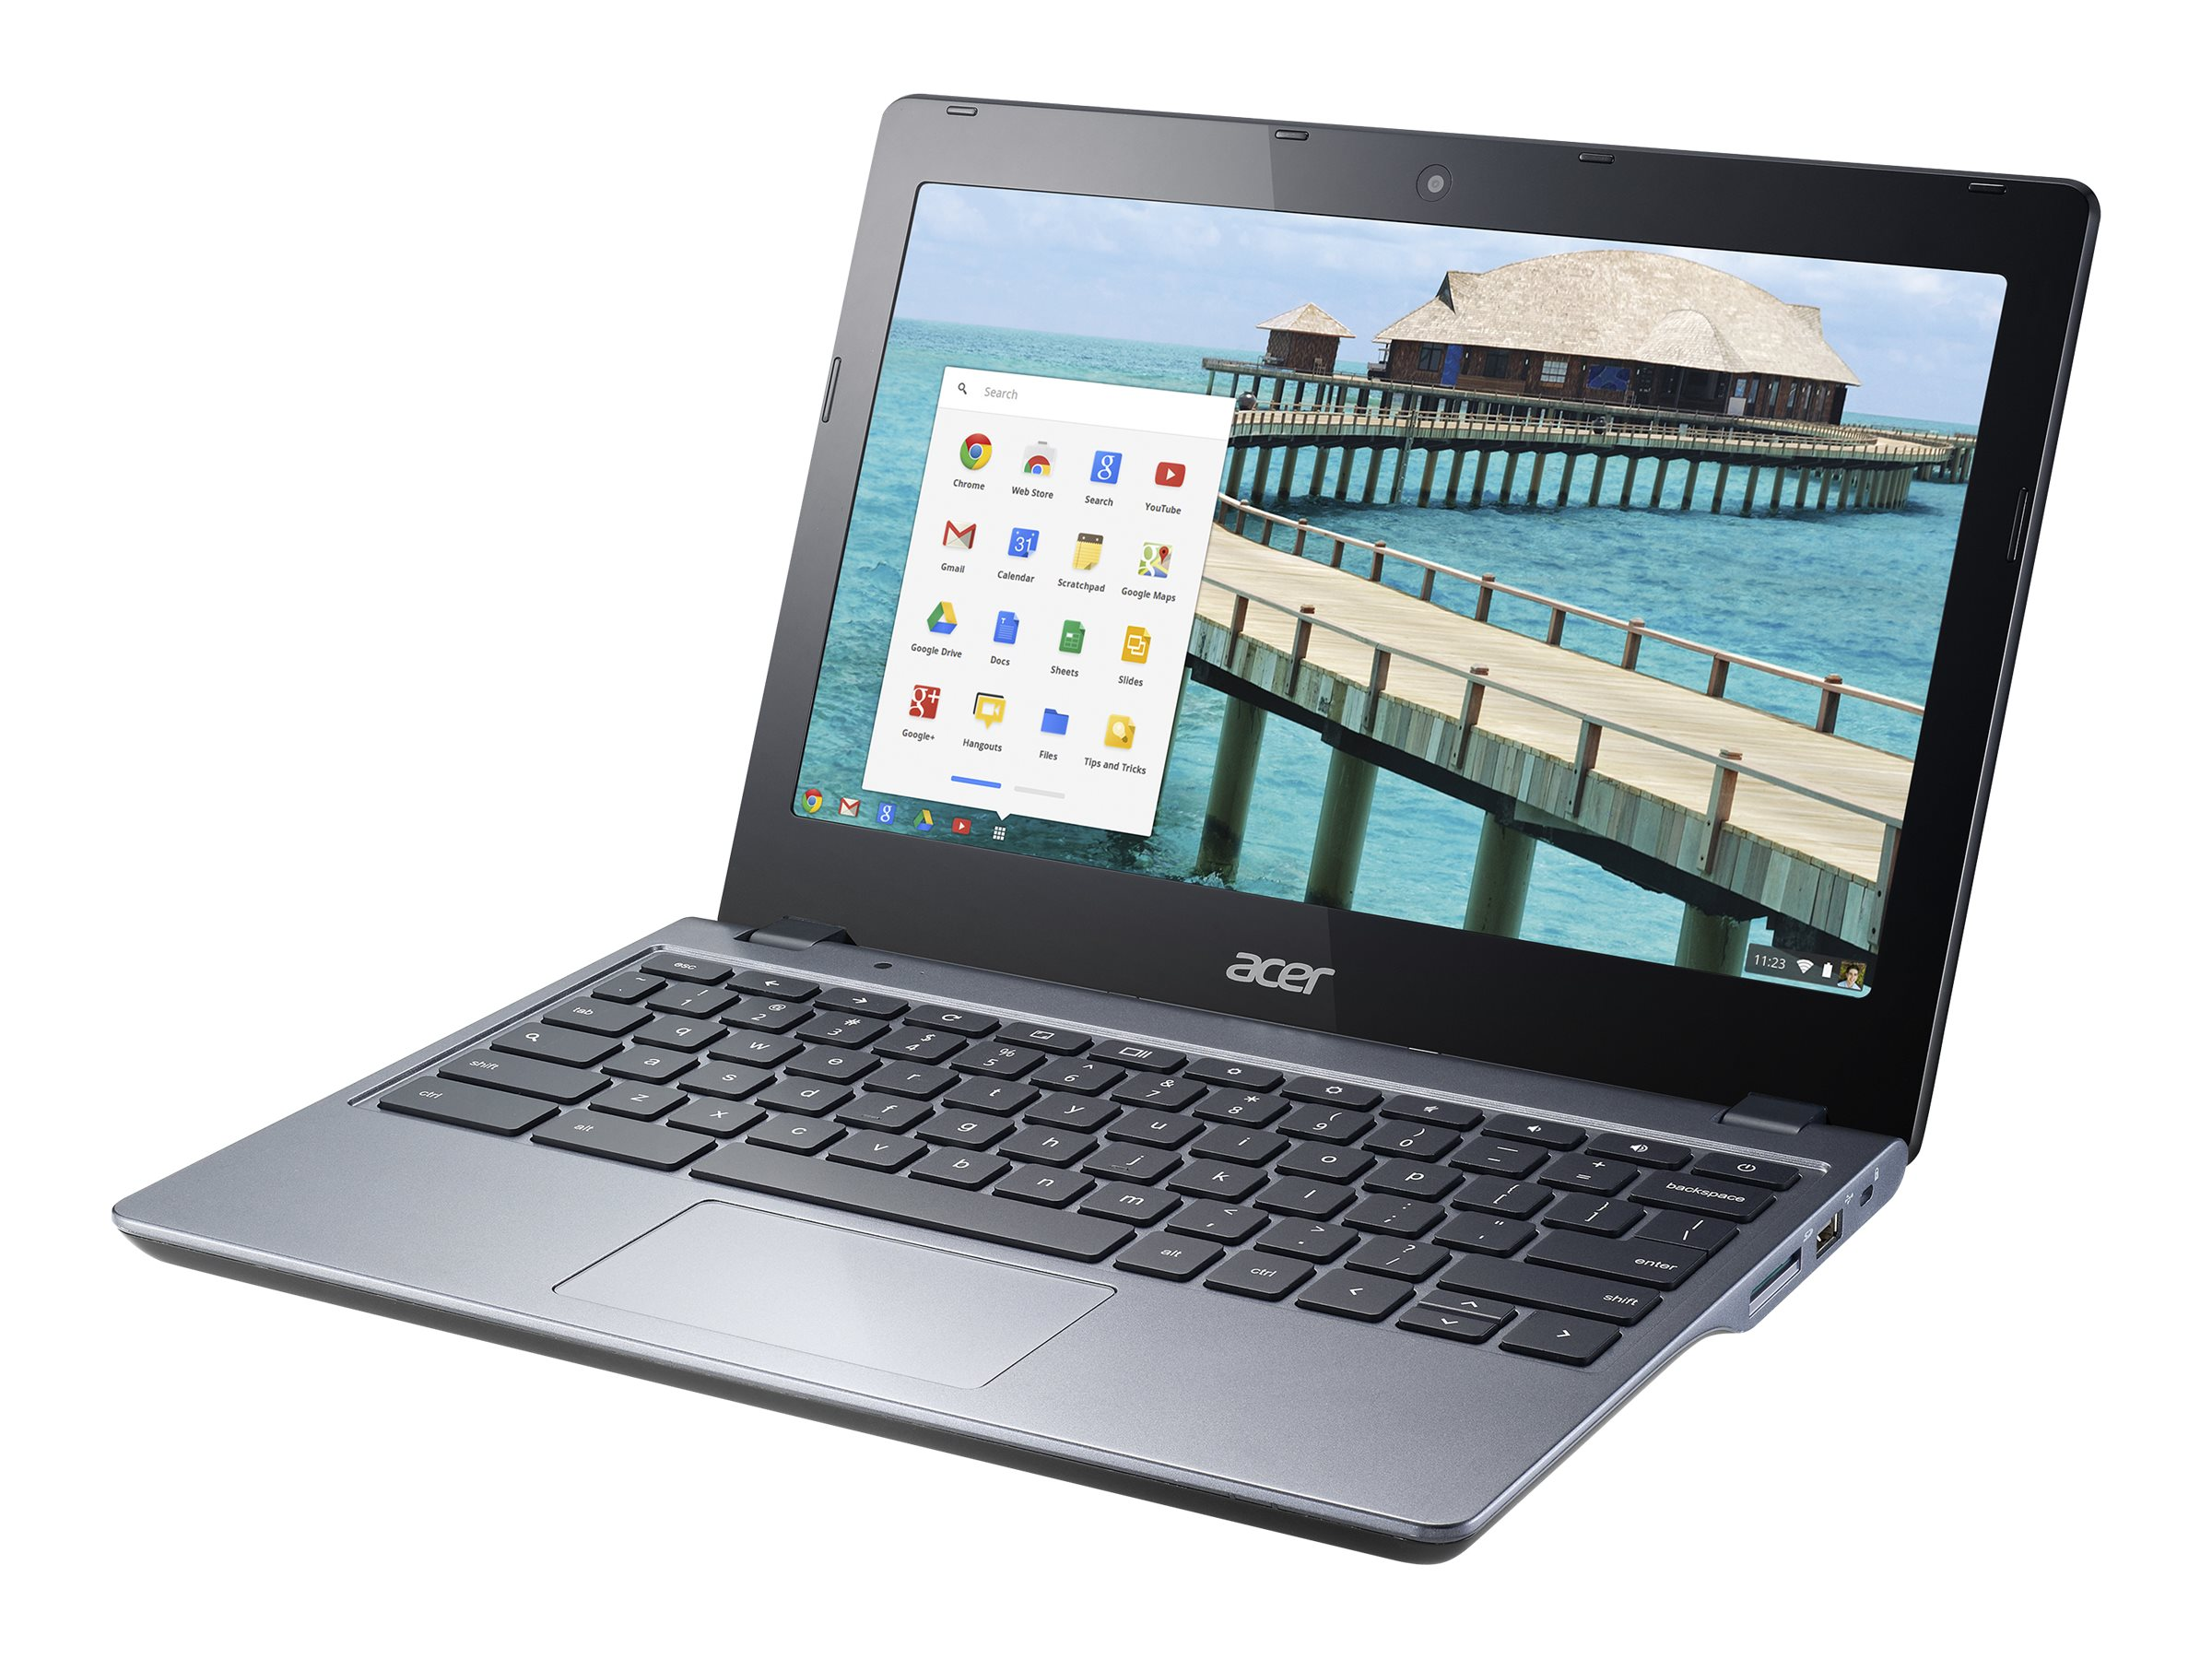 Acer Chromebook C720-2103 : 1.4GHz Celeron 11.6in display, NX.SHEAA.006, 16559263, Notebooks